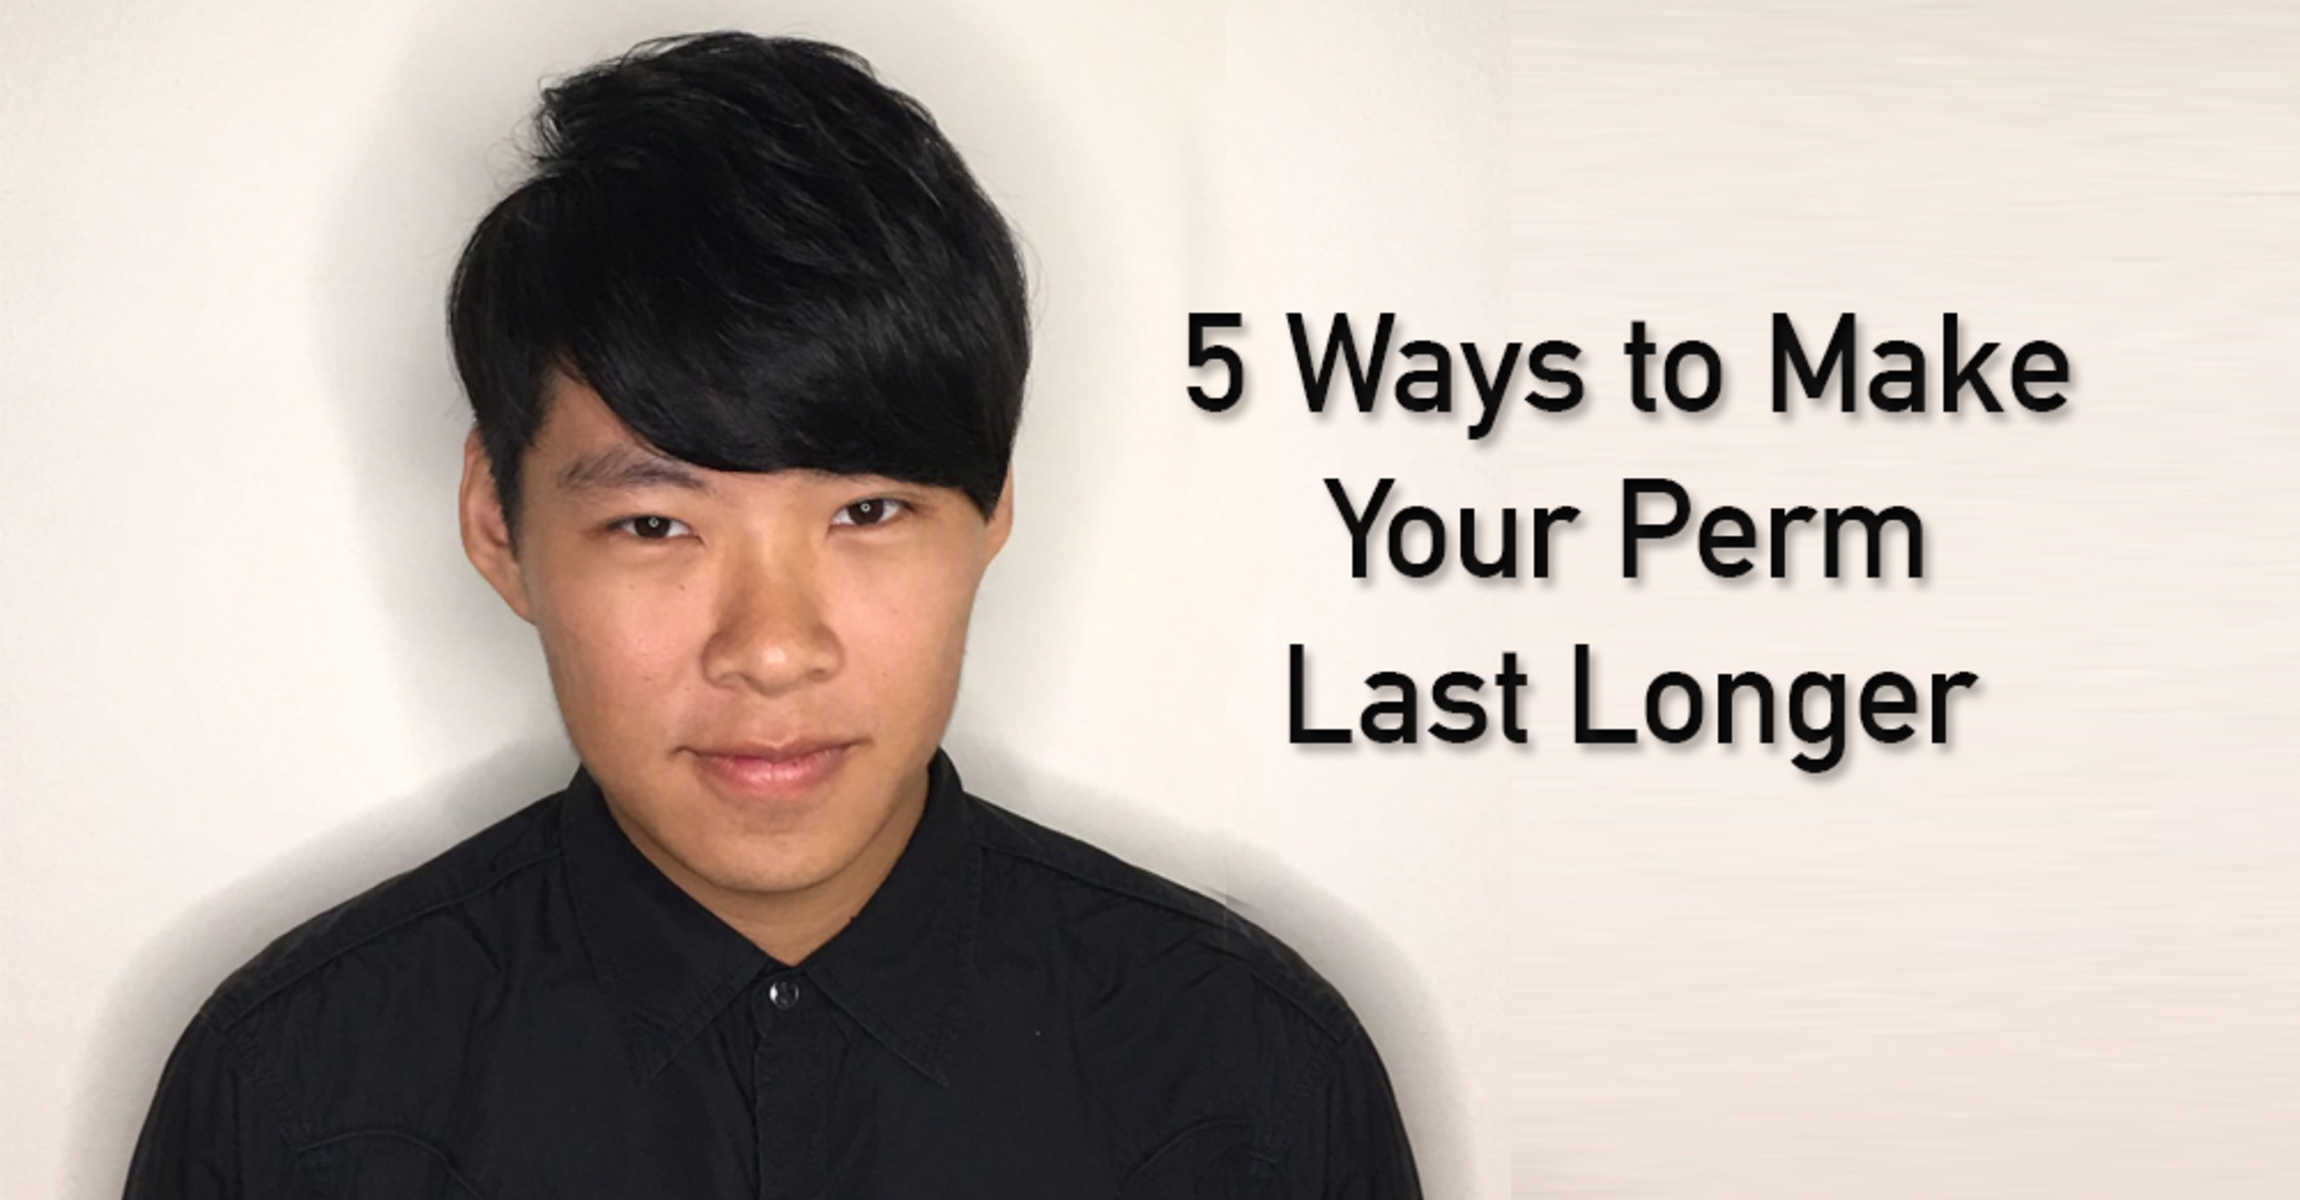 Straight hair perm guys - Quick Guide To Maintain And Make Your Perm Last Longer For Men In Singapore